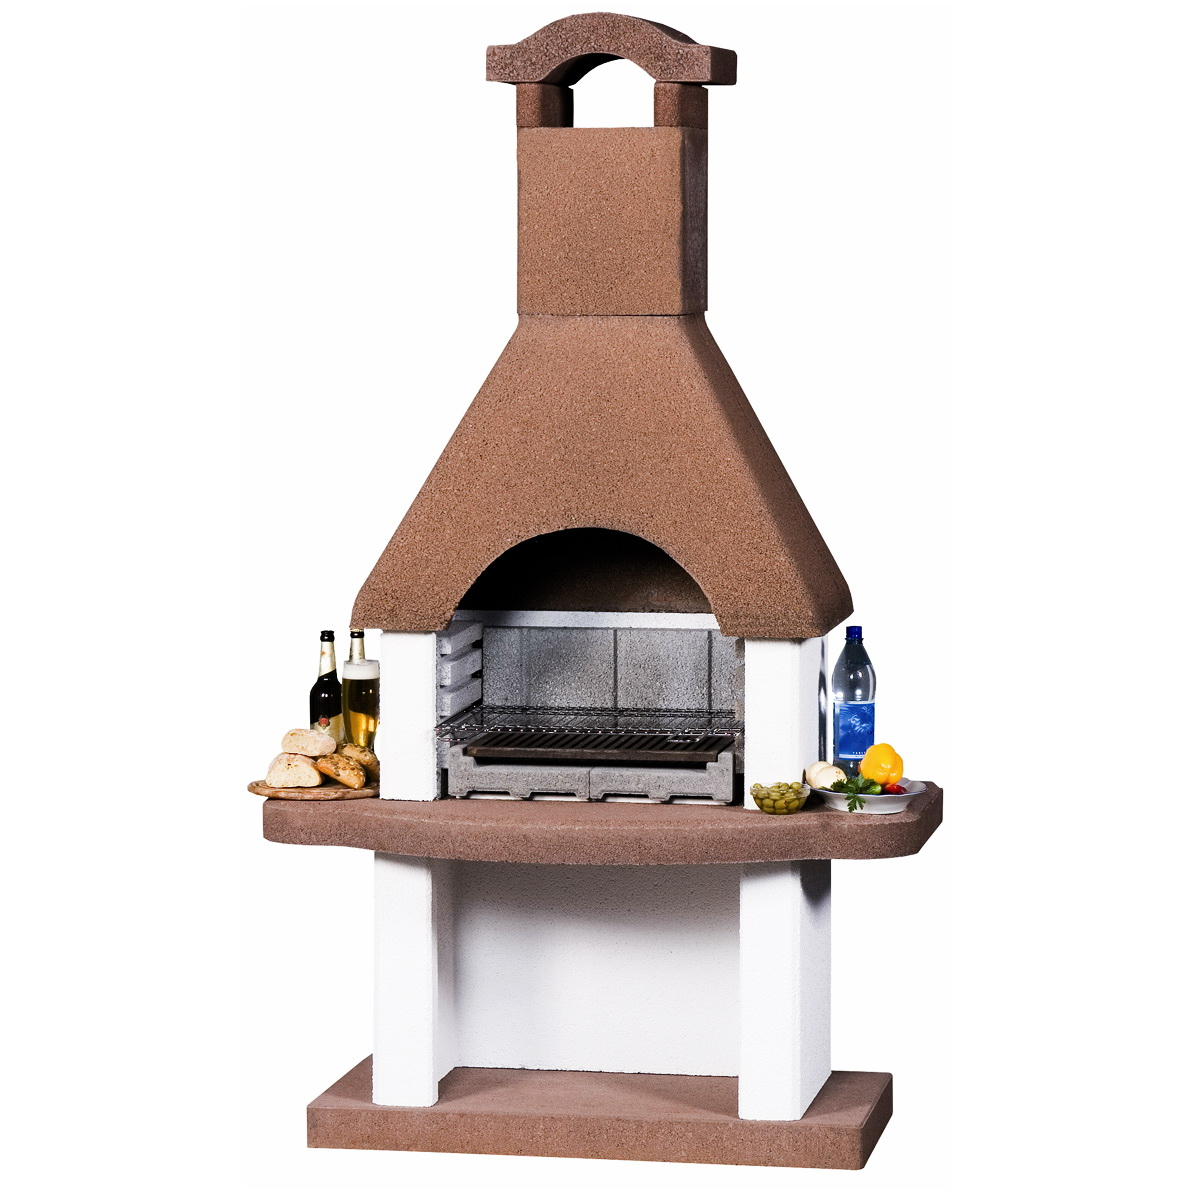 Barbecue masonry 200x120cm / 430kgs from Intergard